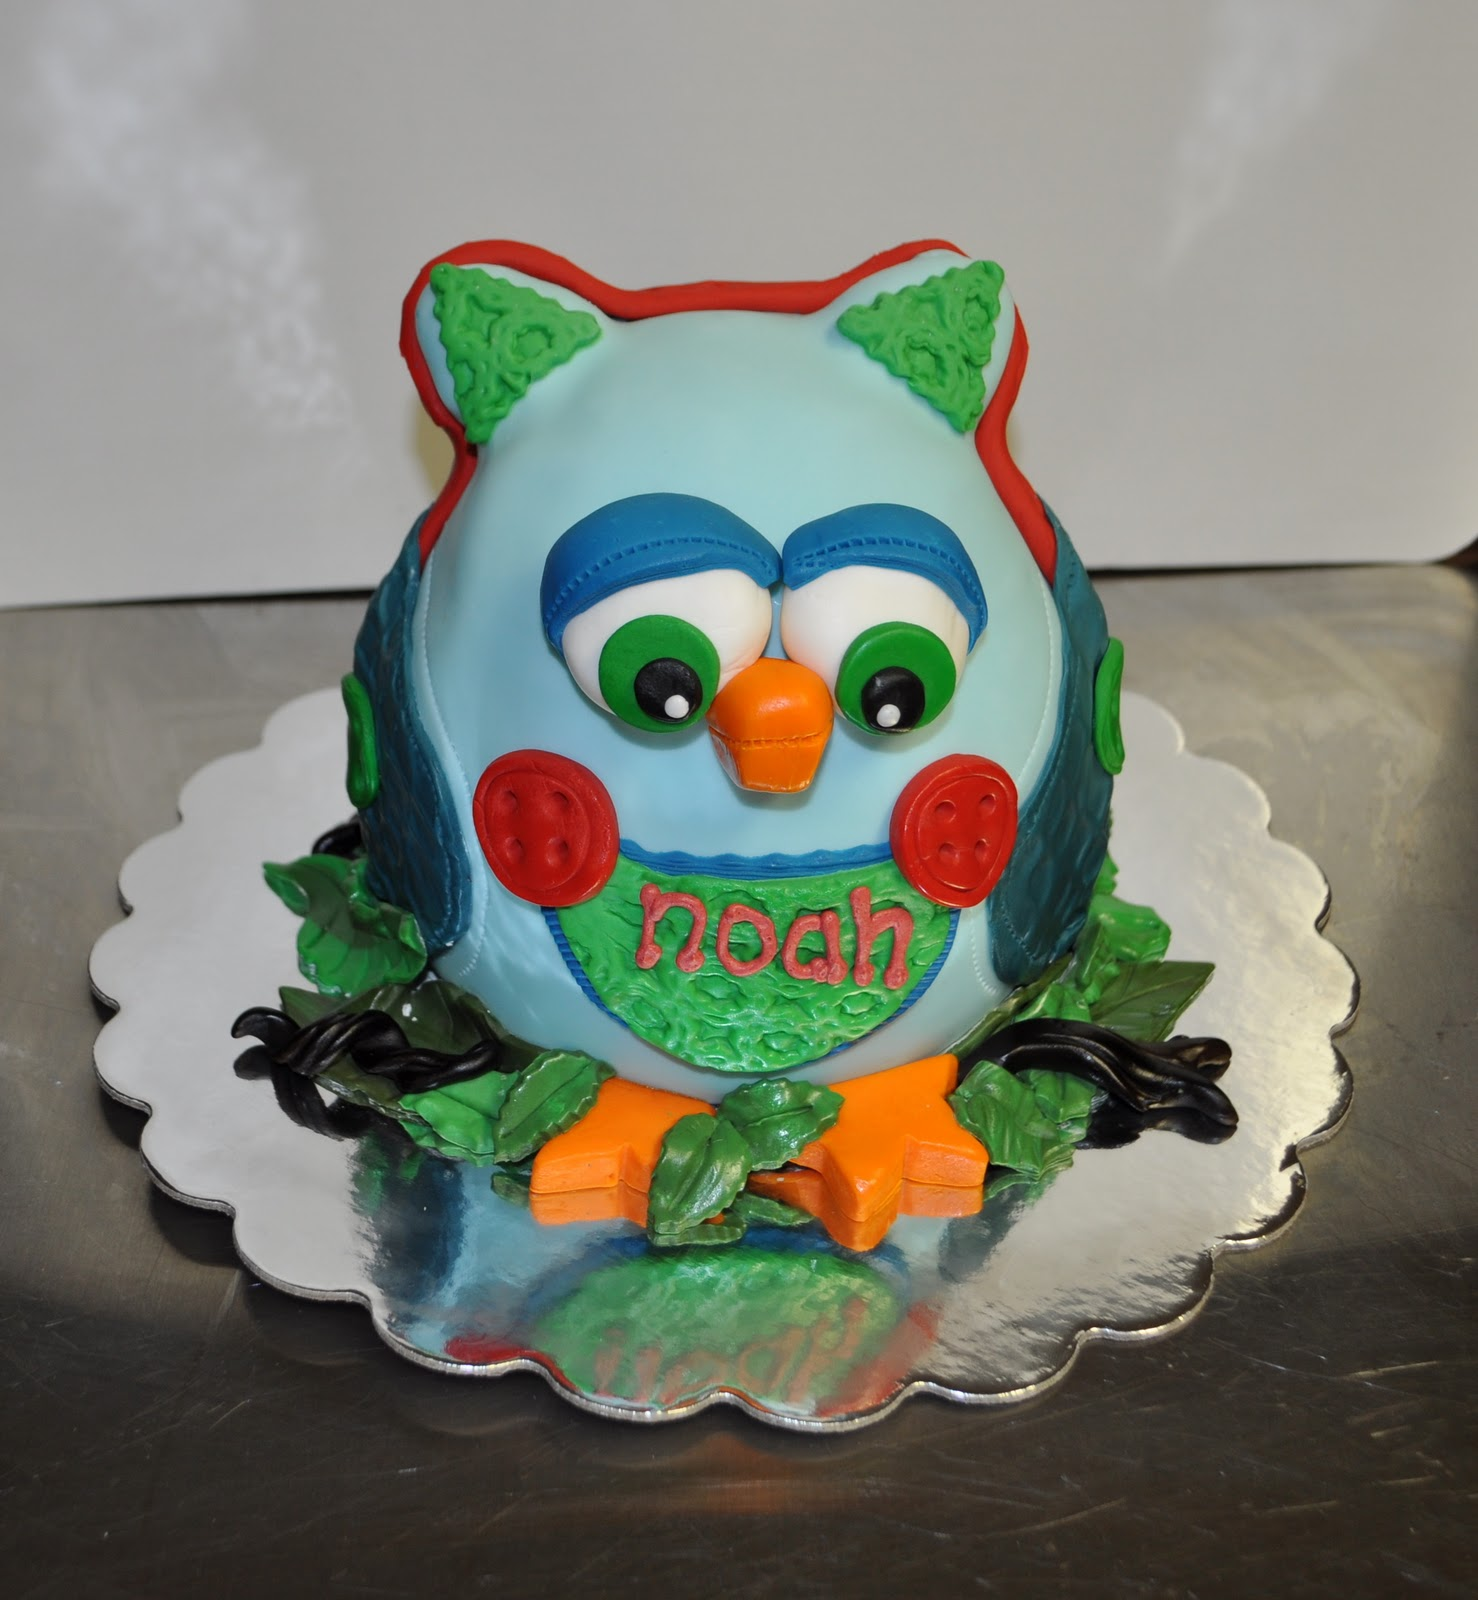 Owner And Cake Artist : Leah s Sweet Treats: Owl Cake and cupcakes!